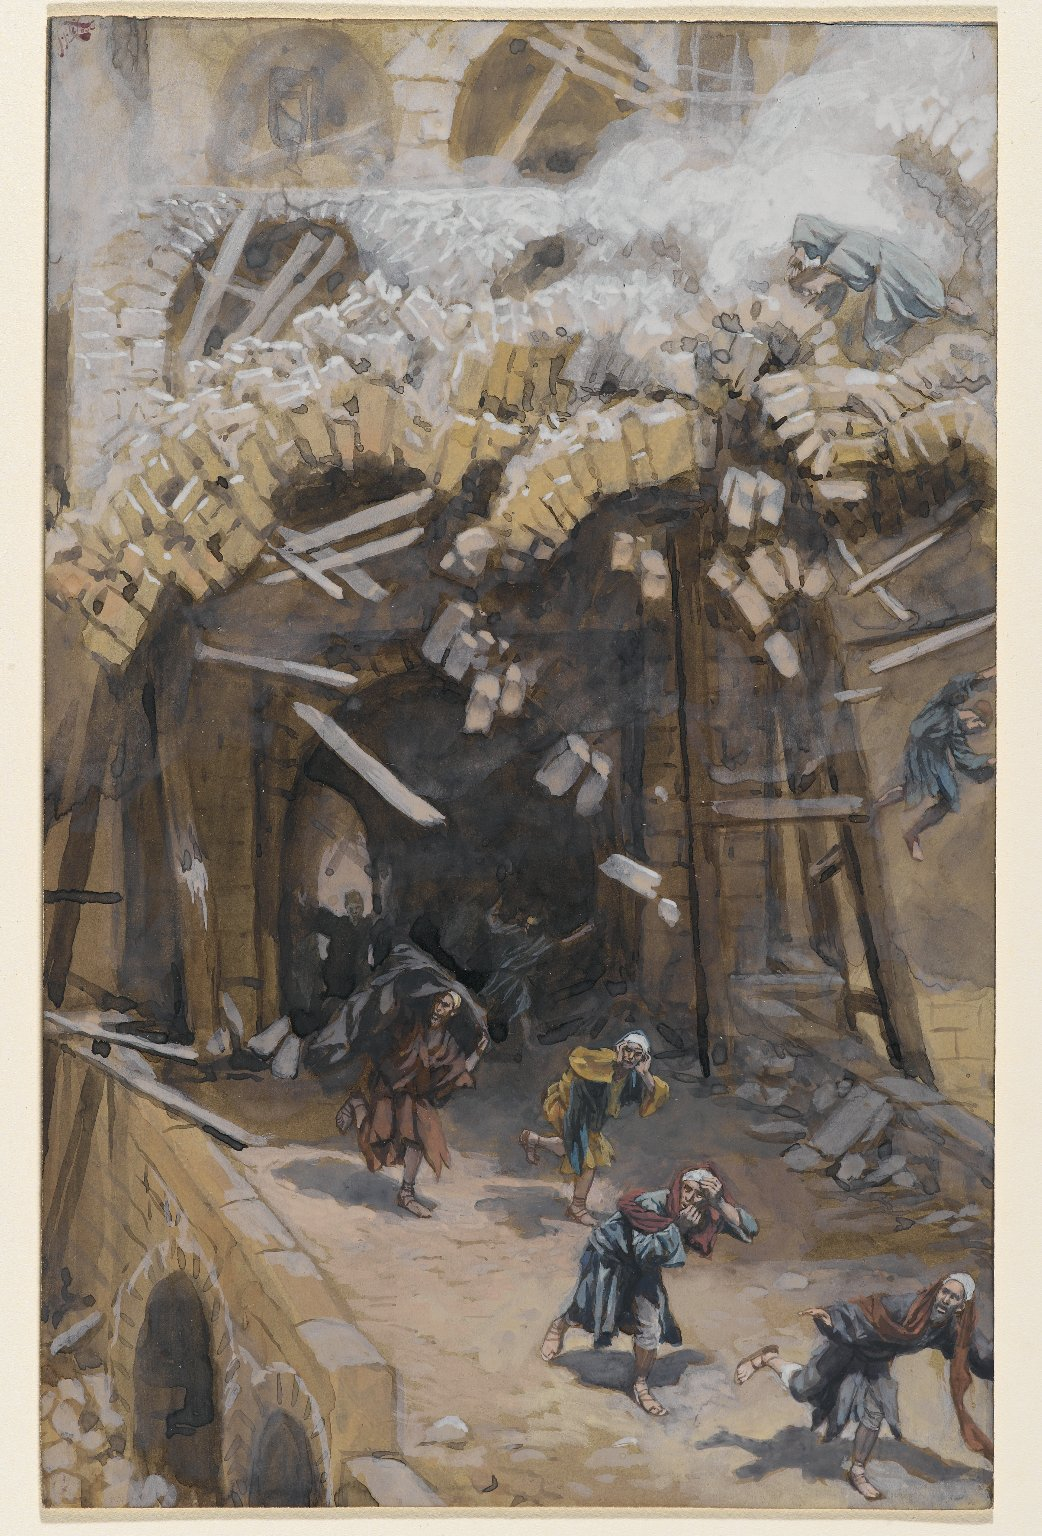 The Tower of Siloam by James Tissot